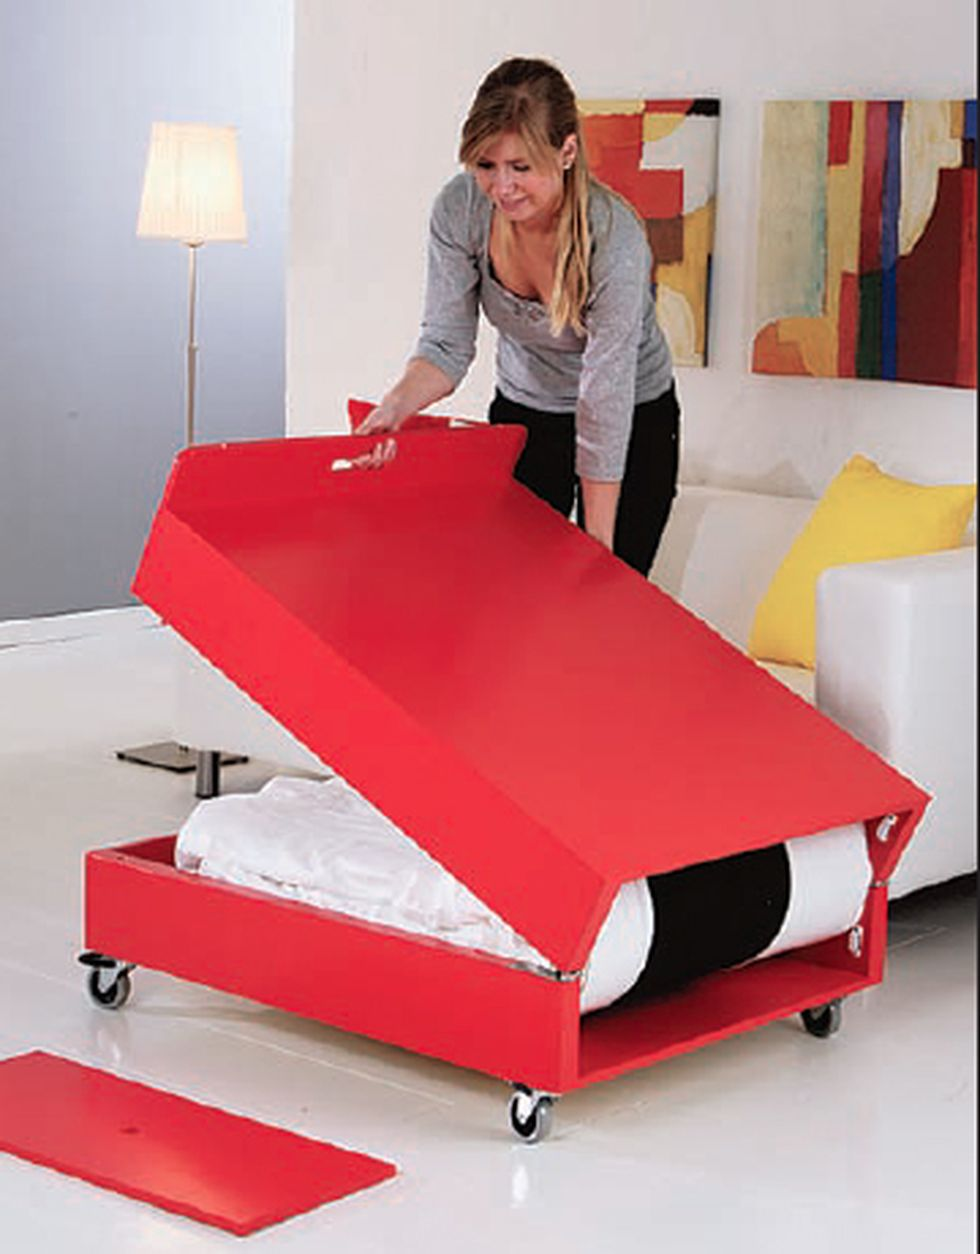 Saving space with creative folding bed ideas 5 for Portable bed ideas